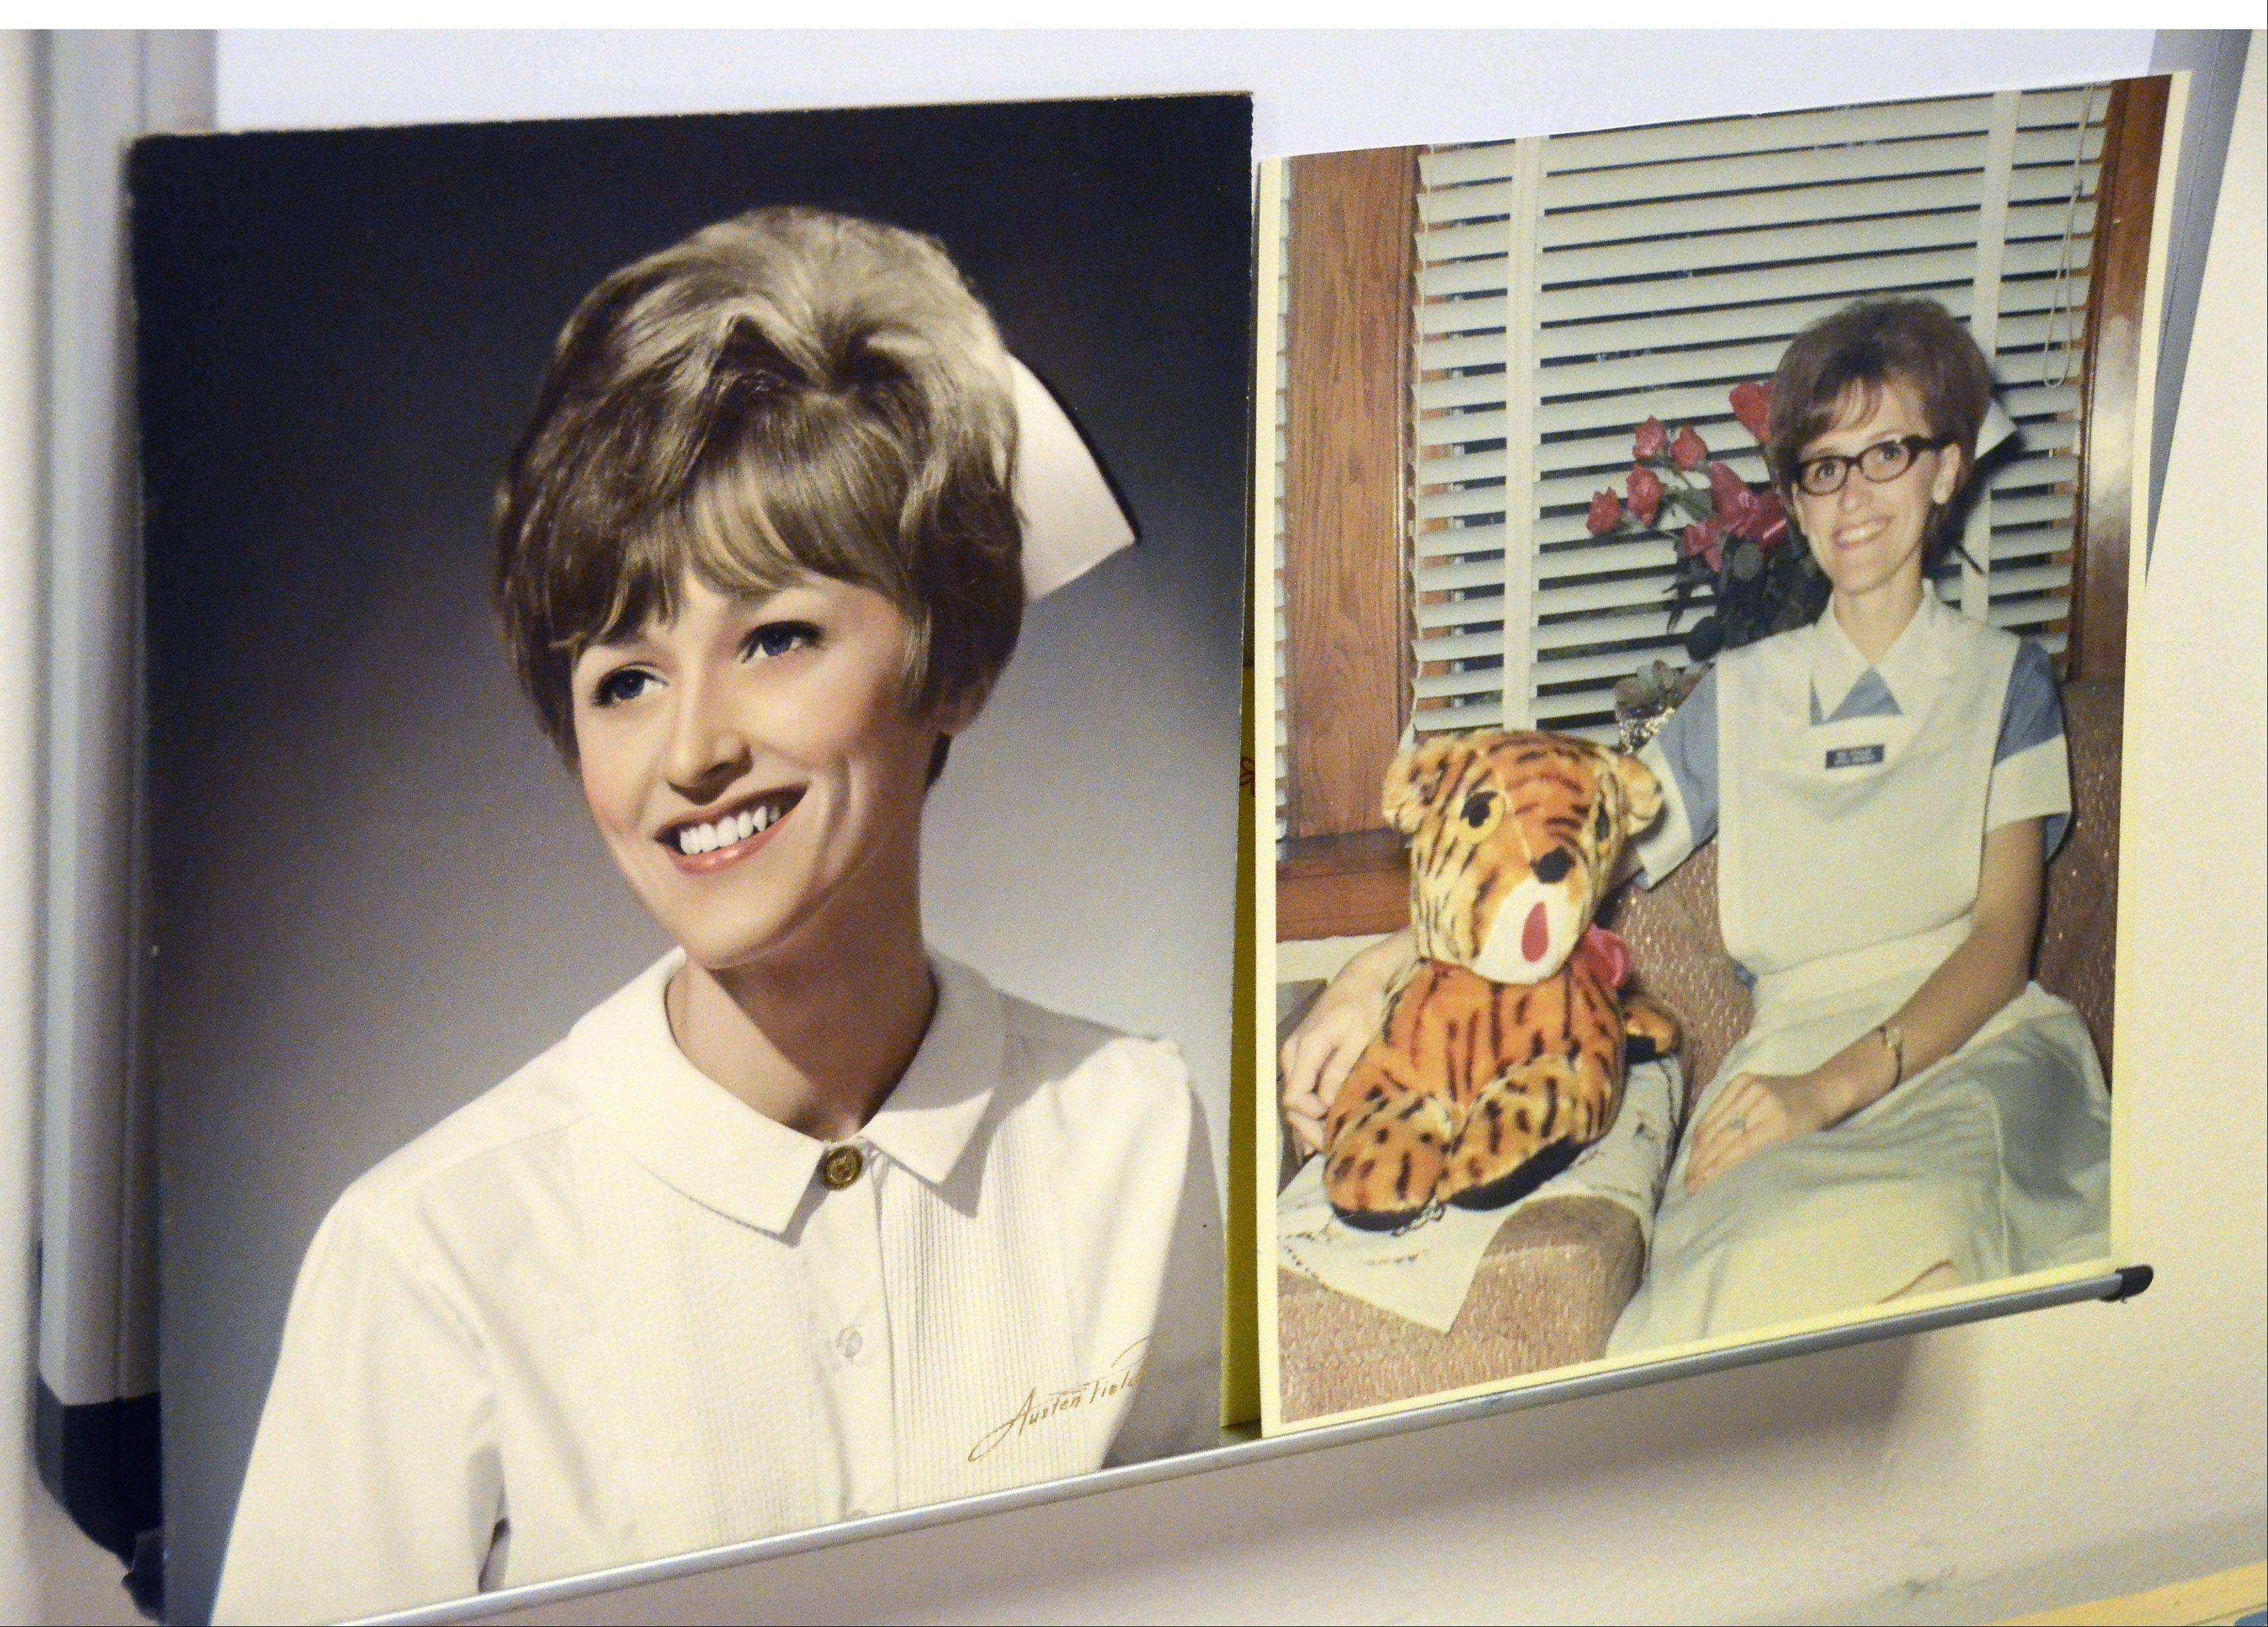 Ann Skwarek of Prospect Heights in her earlier years as a nurse. She is retiring after working for 40 years in the neonatal intensive care unit at Advocate Lutheran General Hospital.